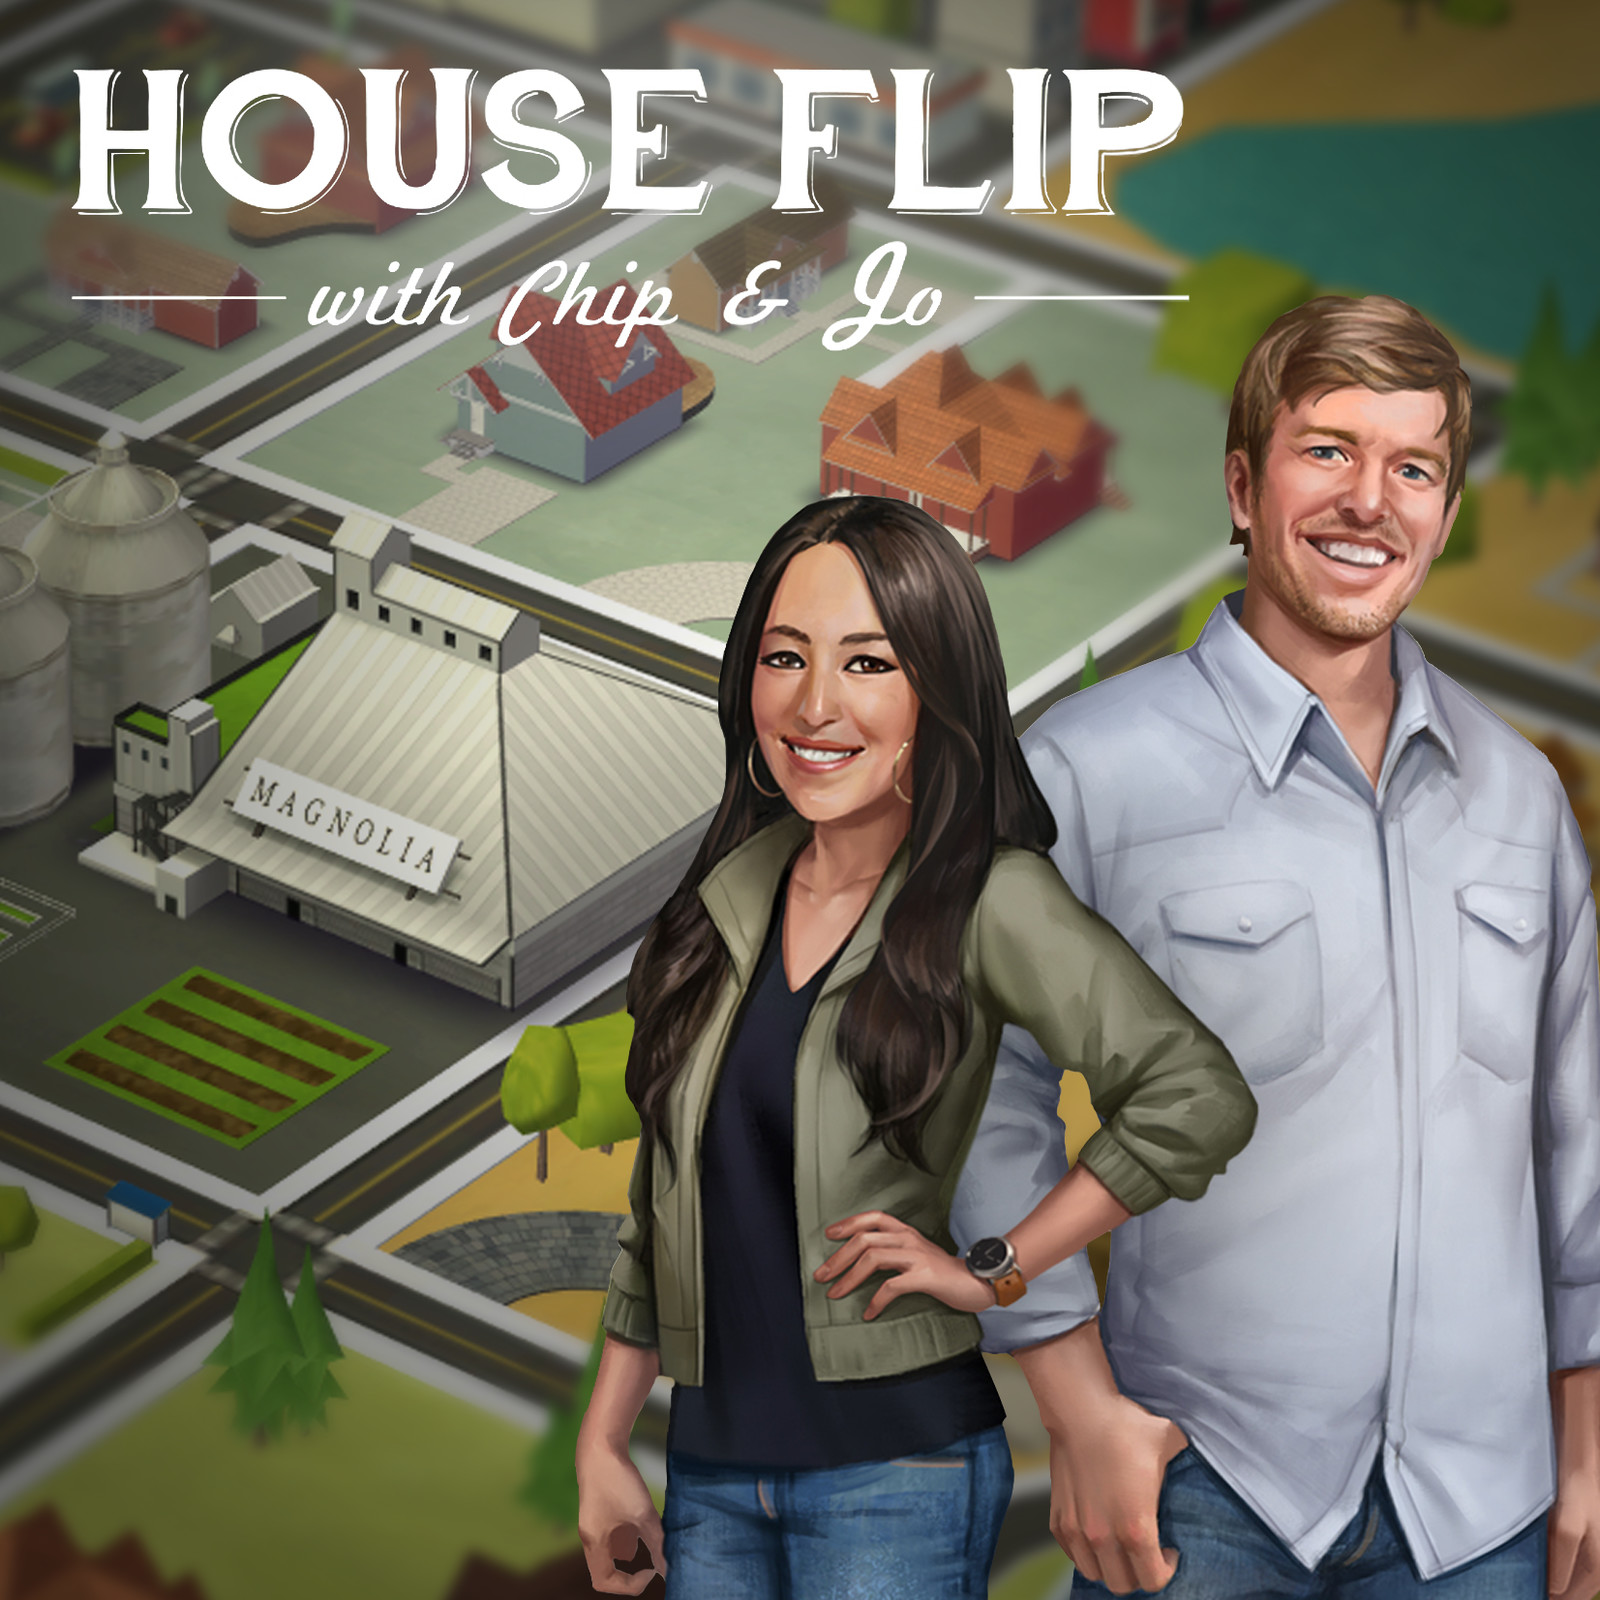 House Flip w/ Chip and Jo - a Magnolia video game, House 3D assets